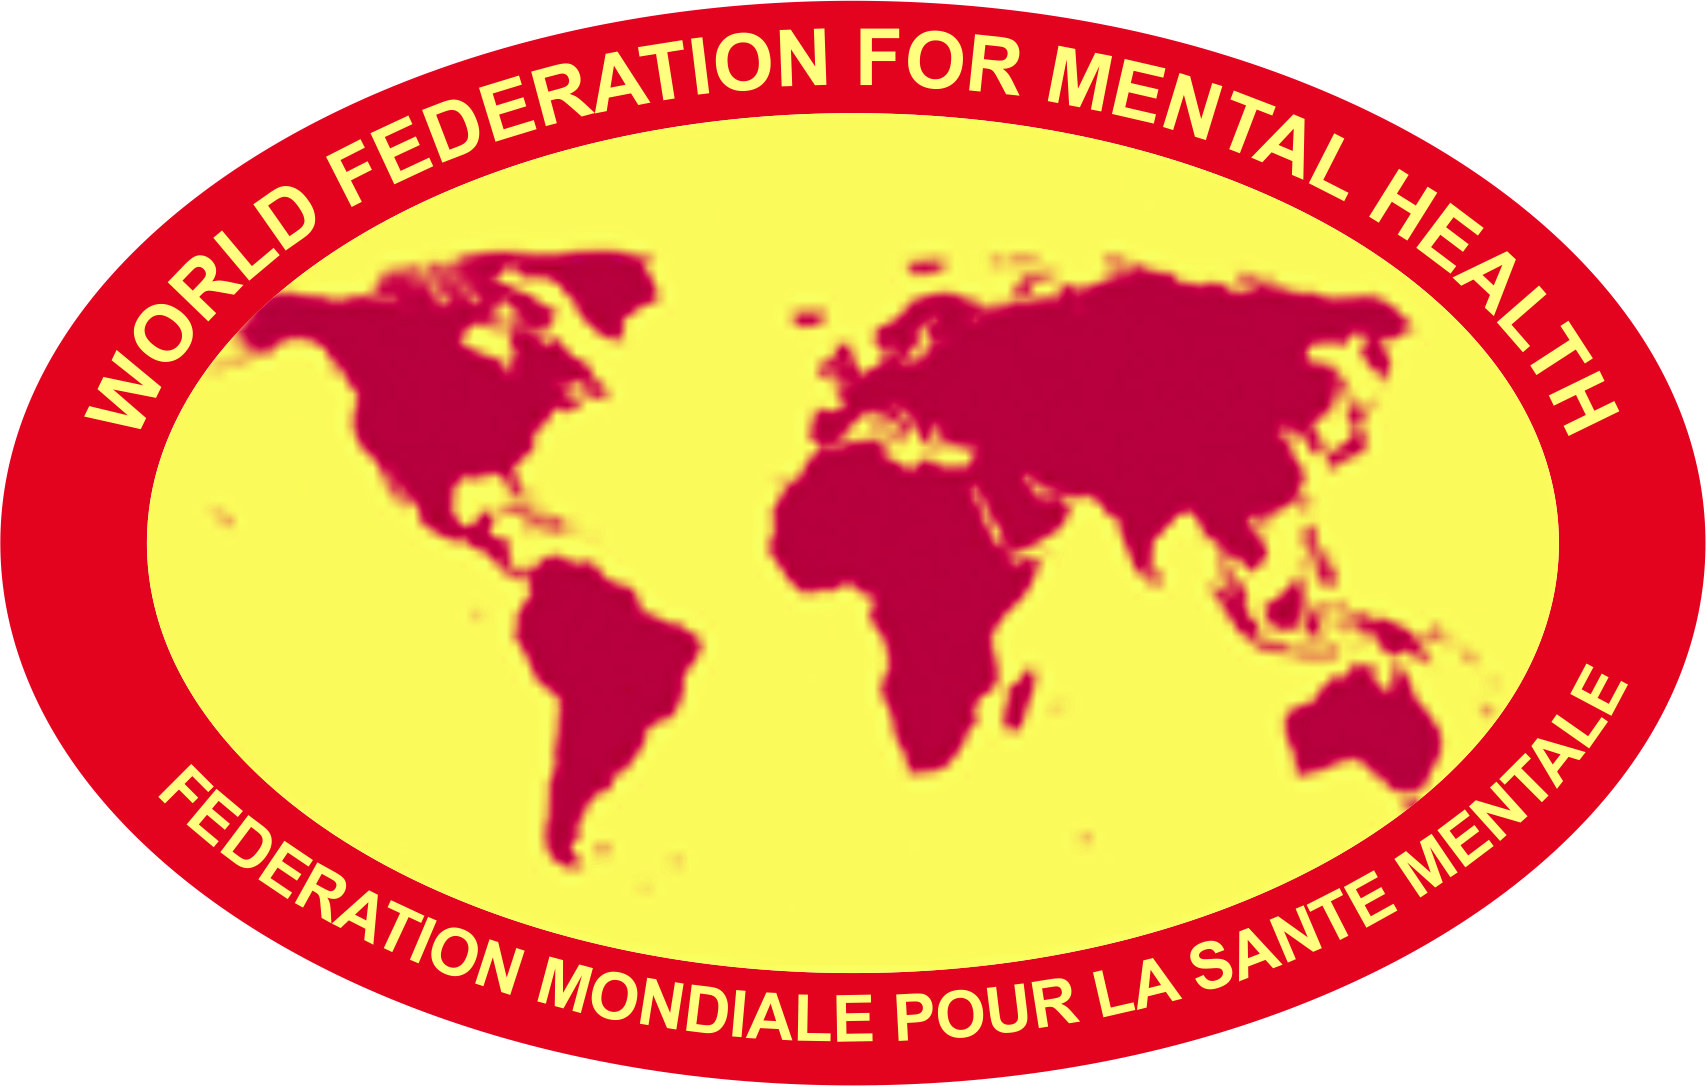 World Federation for Mental Health